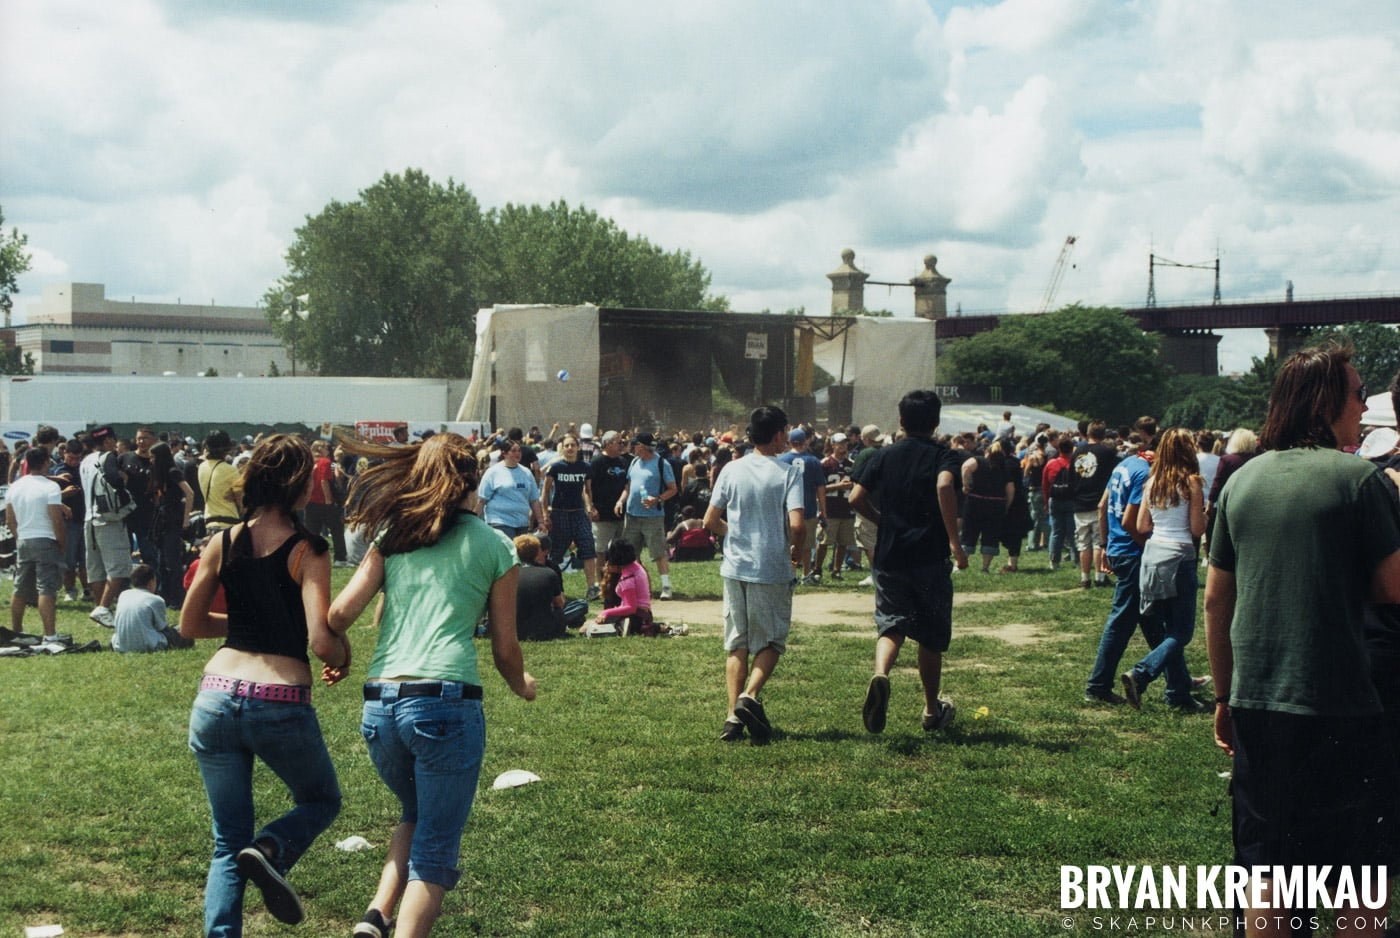 Crowd Shots @ Vans Warped Tour, Randall's Island, NYC - 8.7.04 (4)